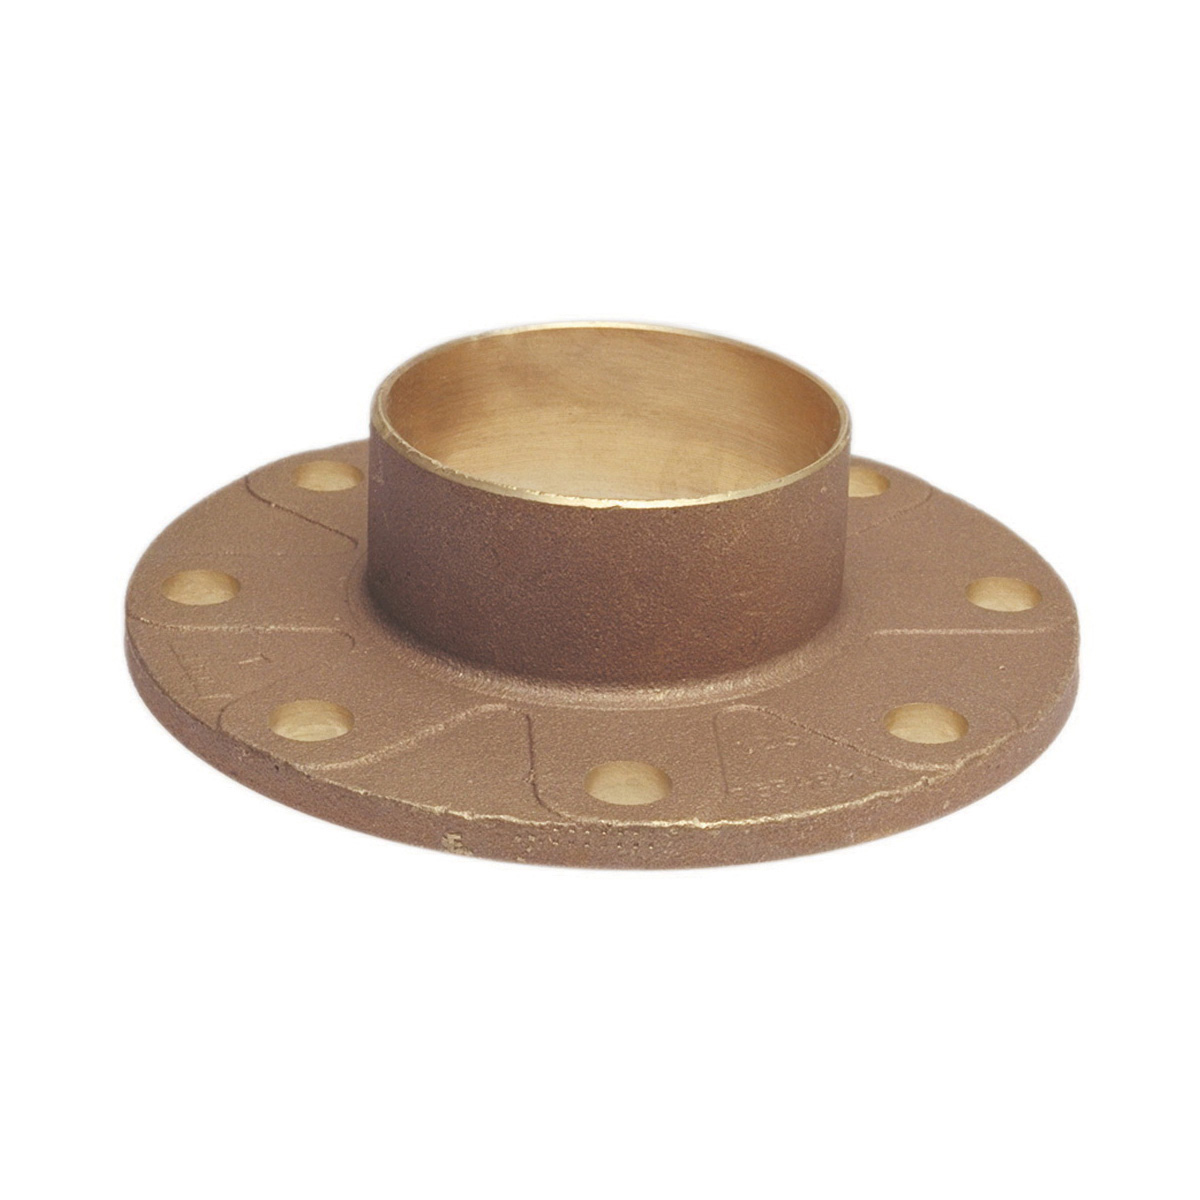 NIBCO® B305606 741 Companion Flange, 3 in Nominal, Bronze, Flanged Connection, 125 lb, Import